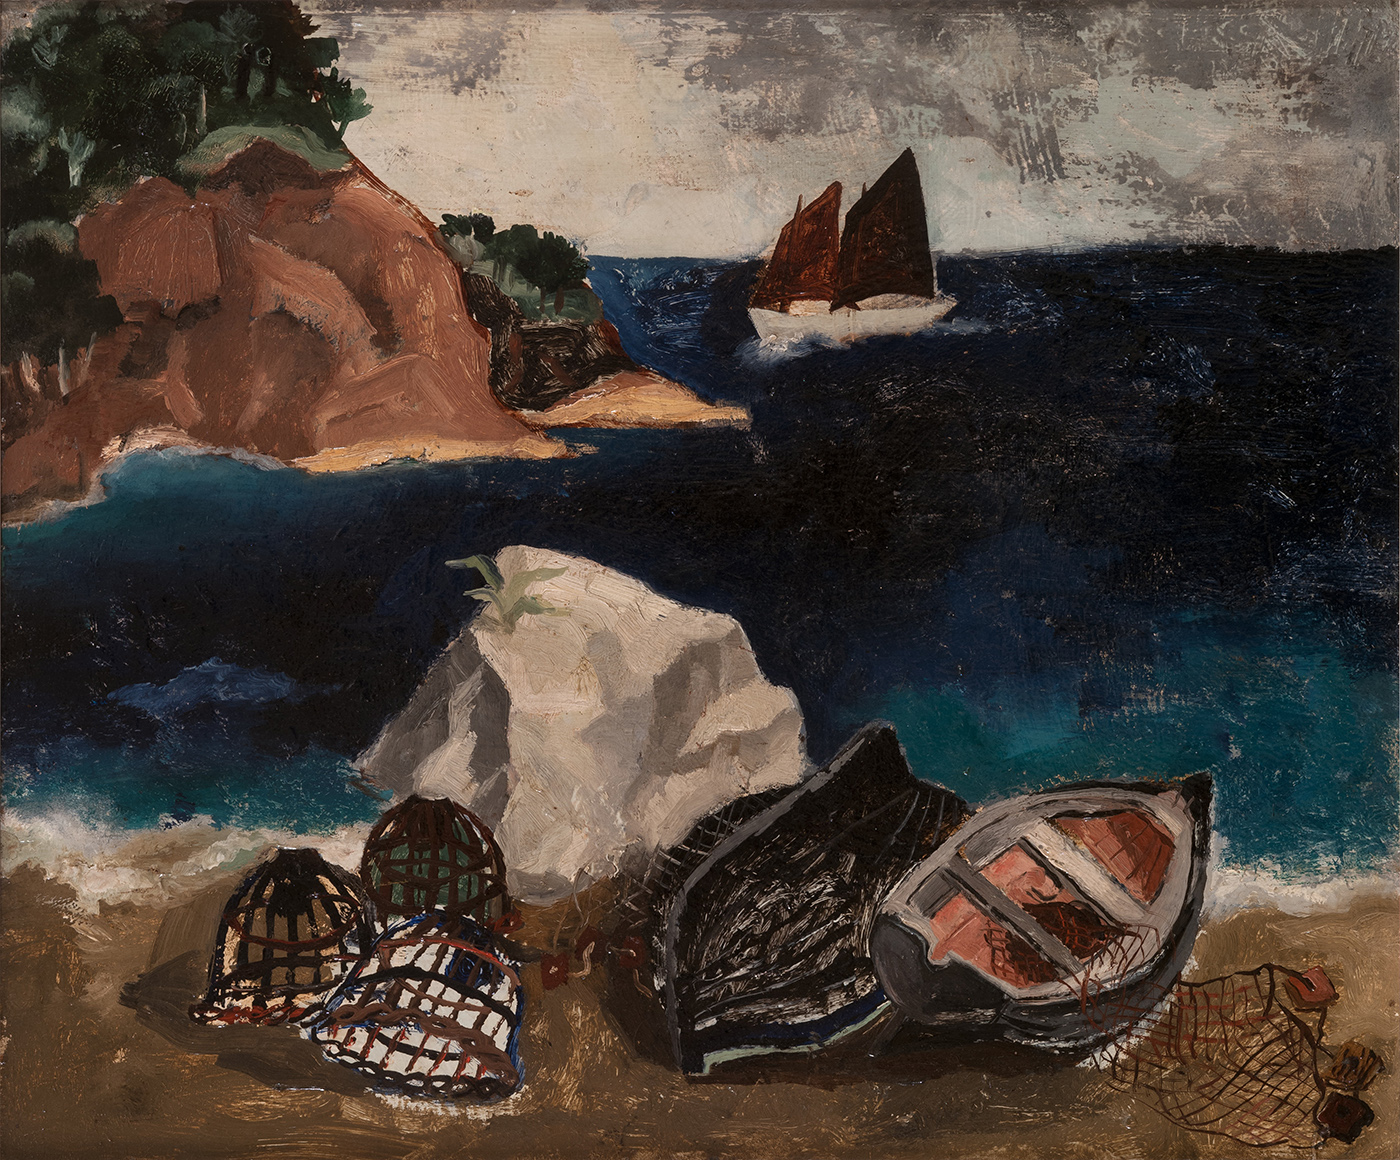 Christopher Woof, Treboul Blue Sea. Private collection - Courtesy Pallant House Gallery